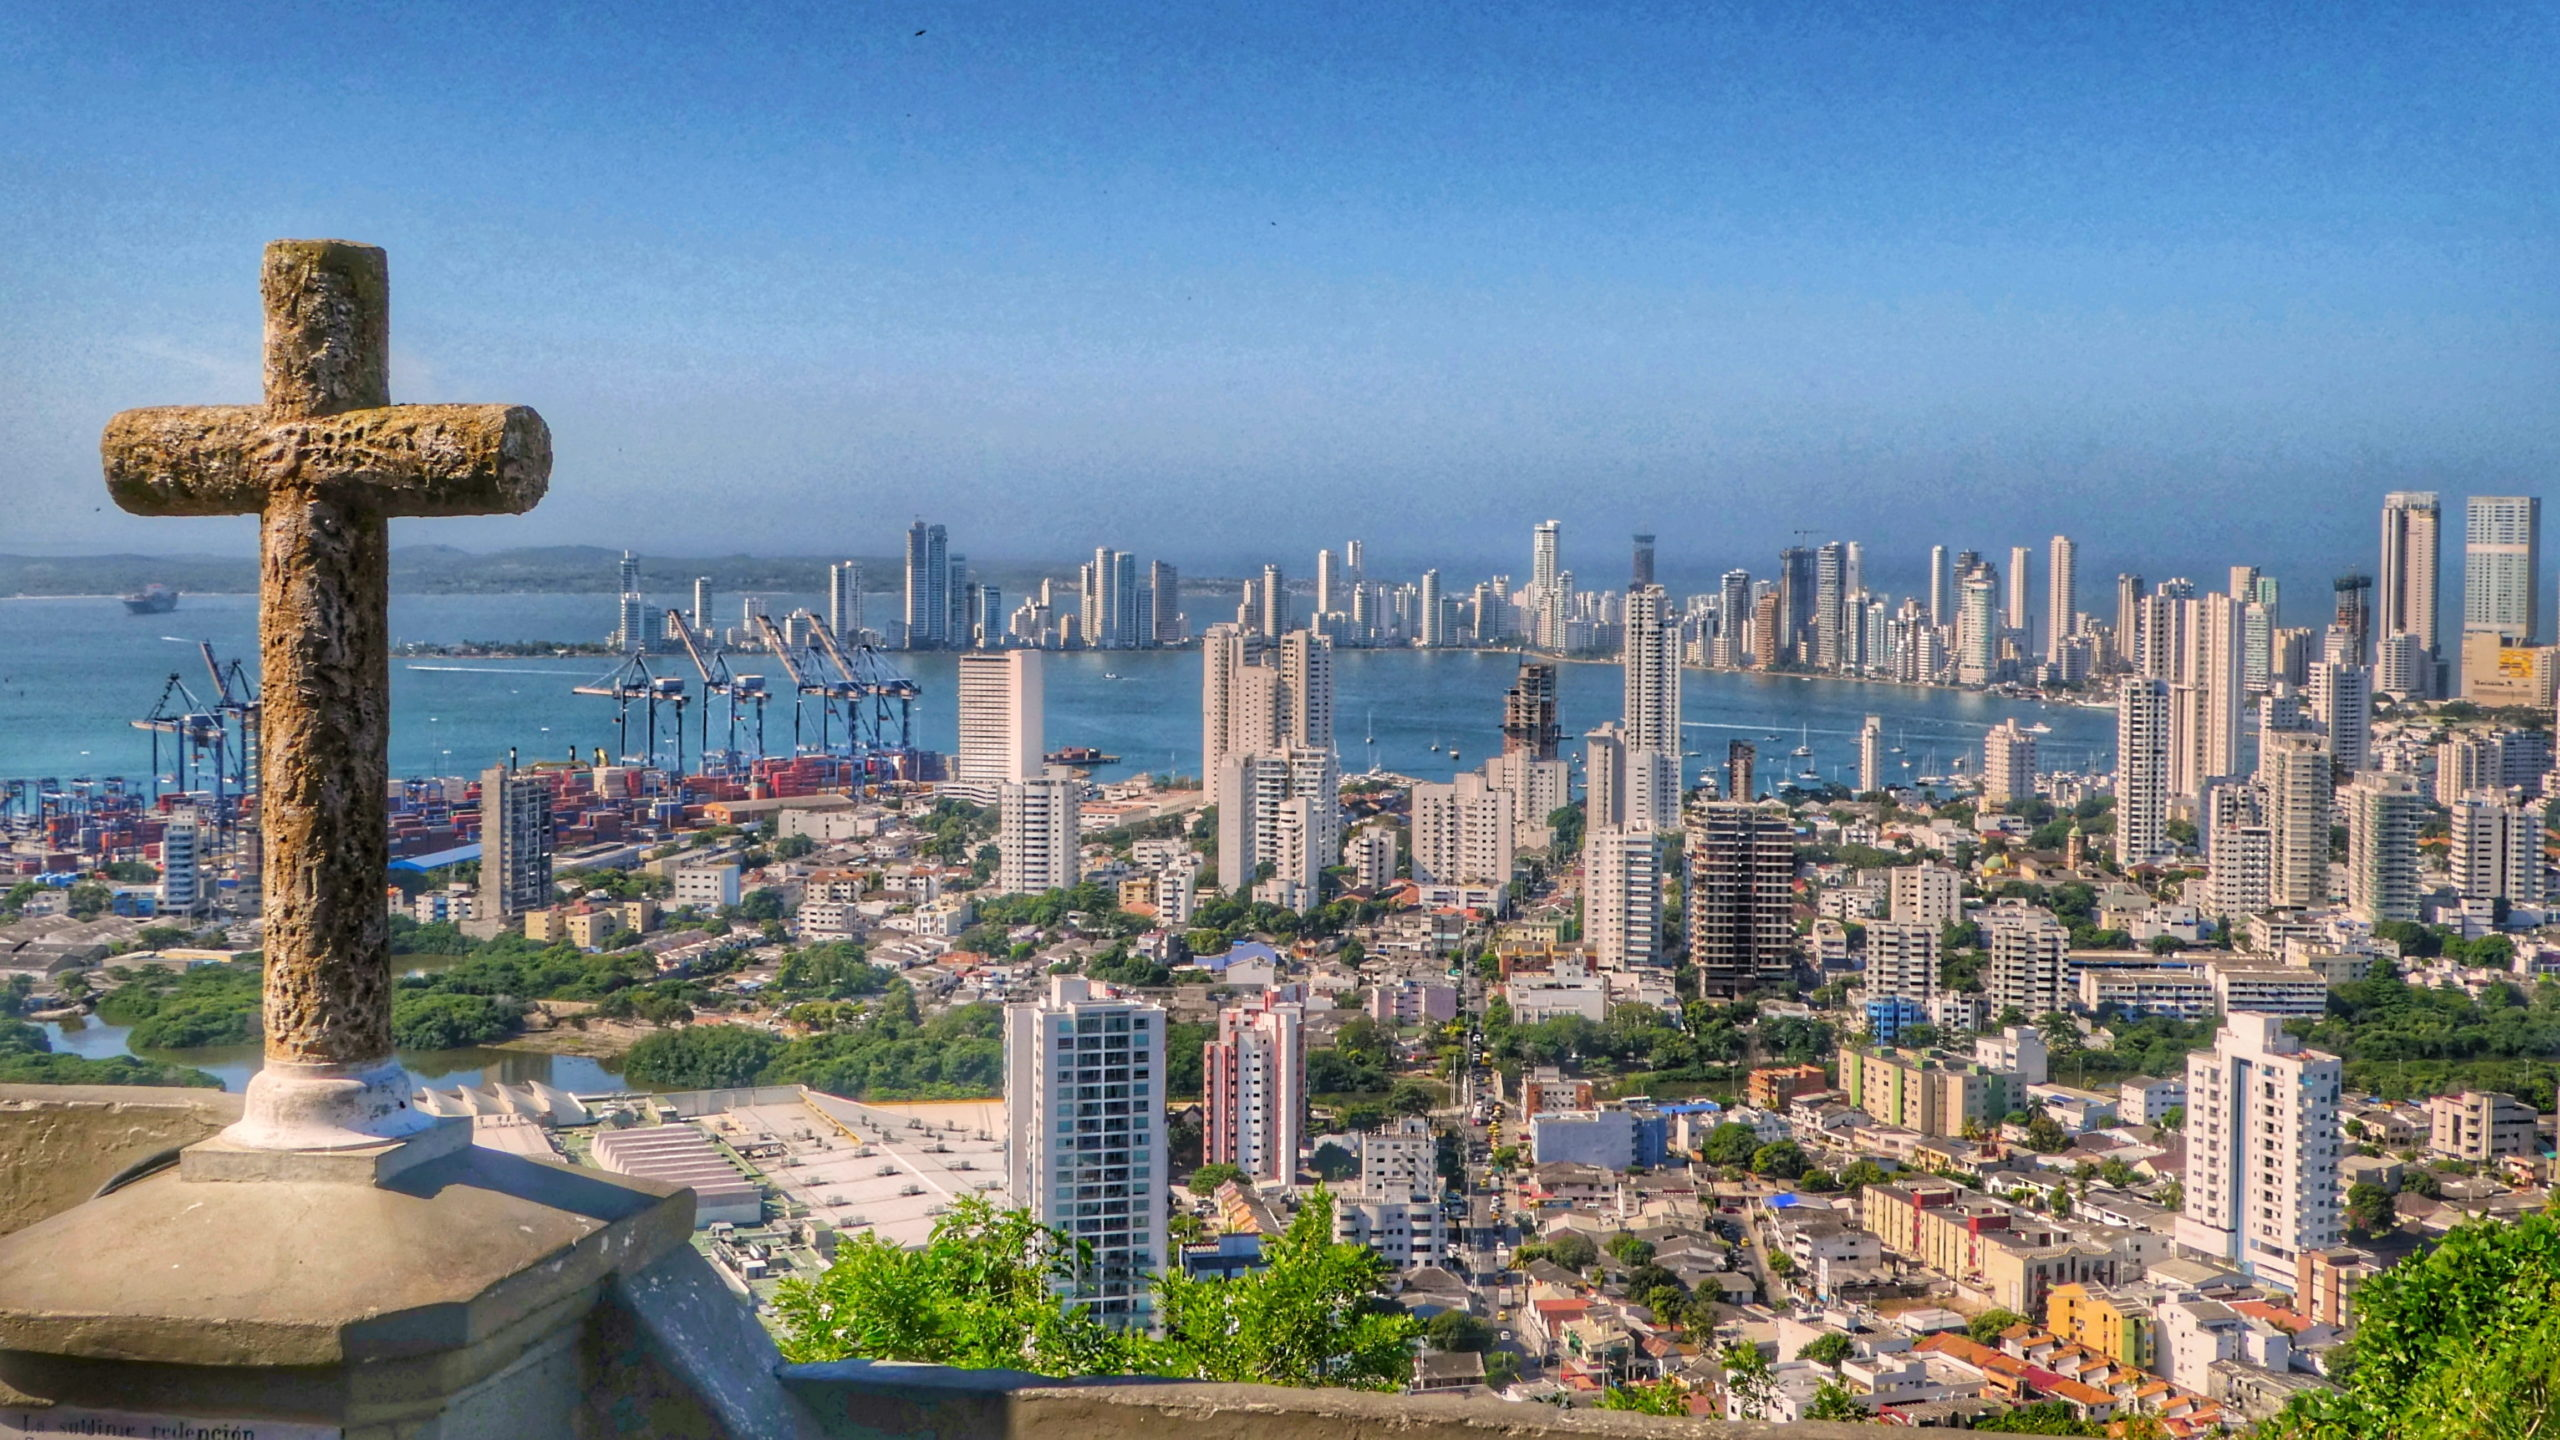 Final thoughts on the safety of Cartagena